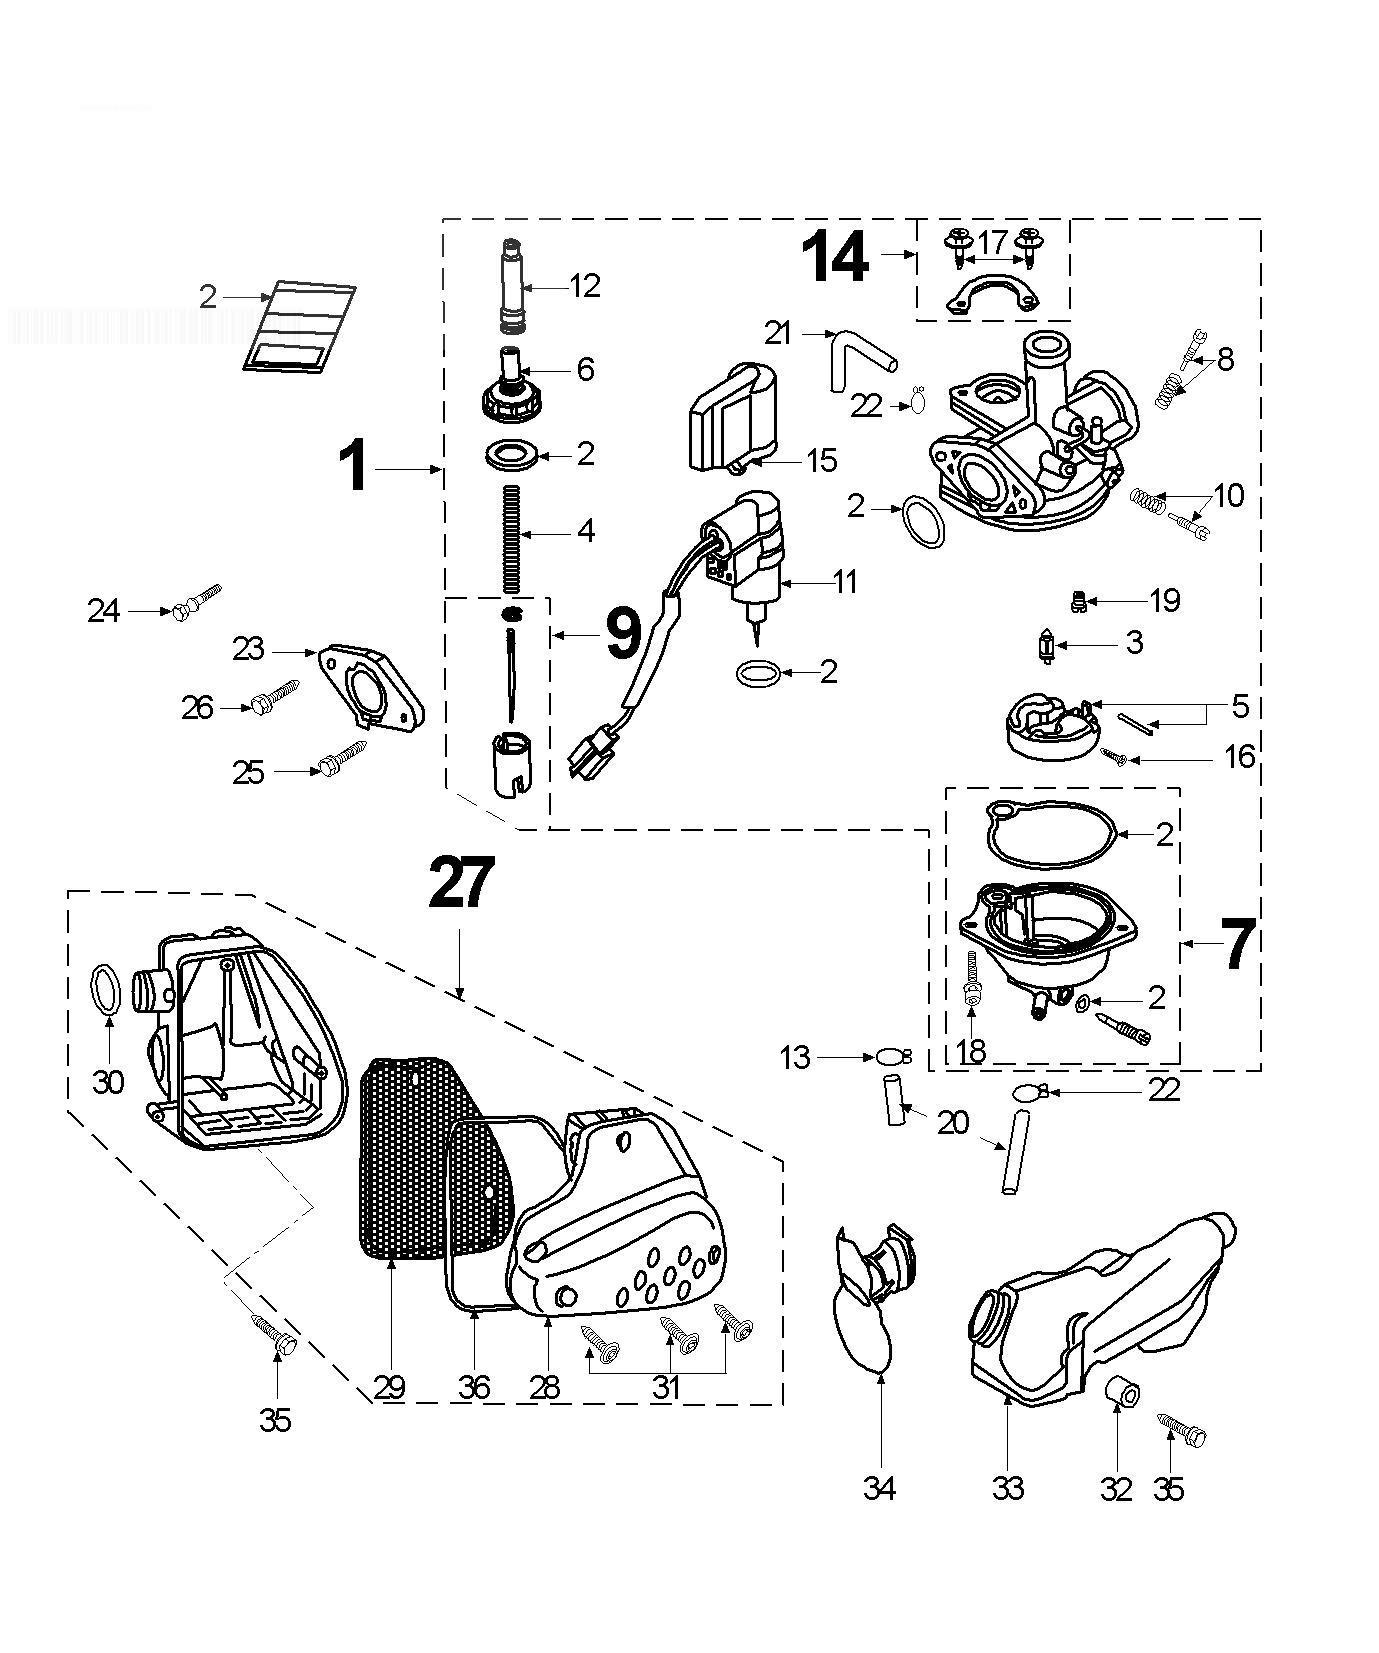 hight resolution of manual of peugeot speedfight 50cc user guide manual that peugeot speedfight 2 50cc wiring diagram